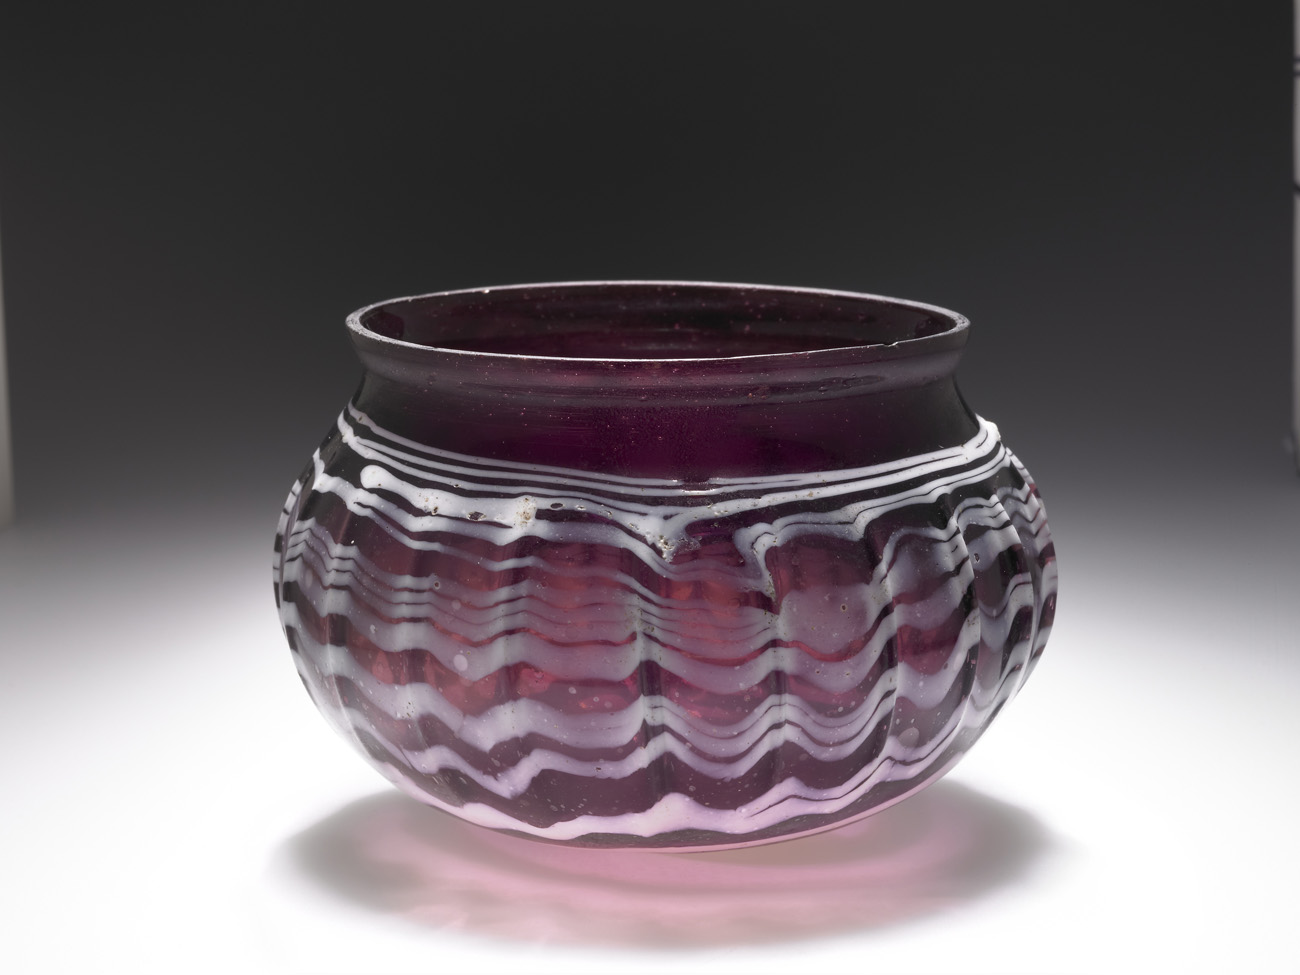 A squat, reddish purple glass bowl with vertical striations and elegant rippling white designs running horizontally